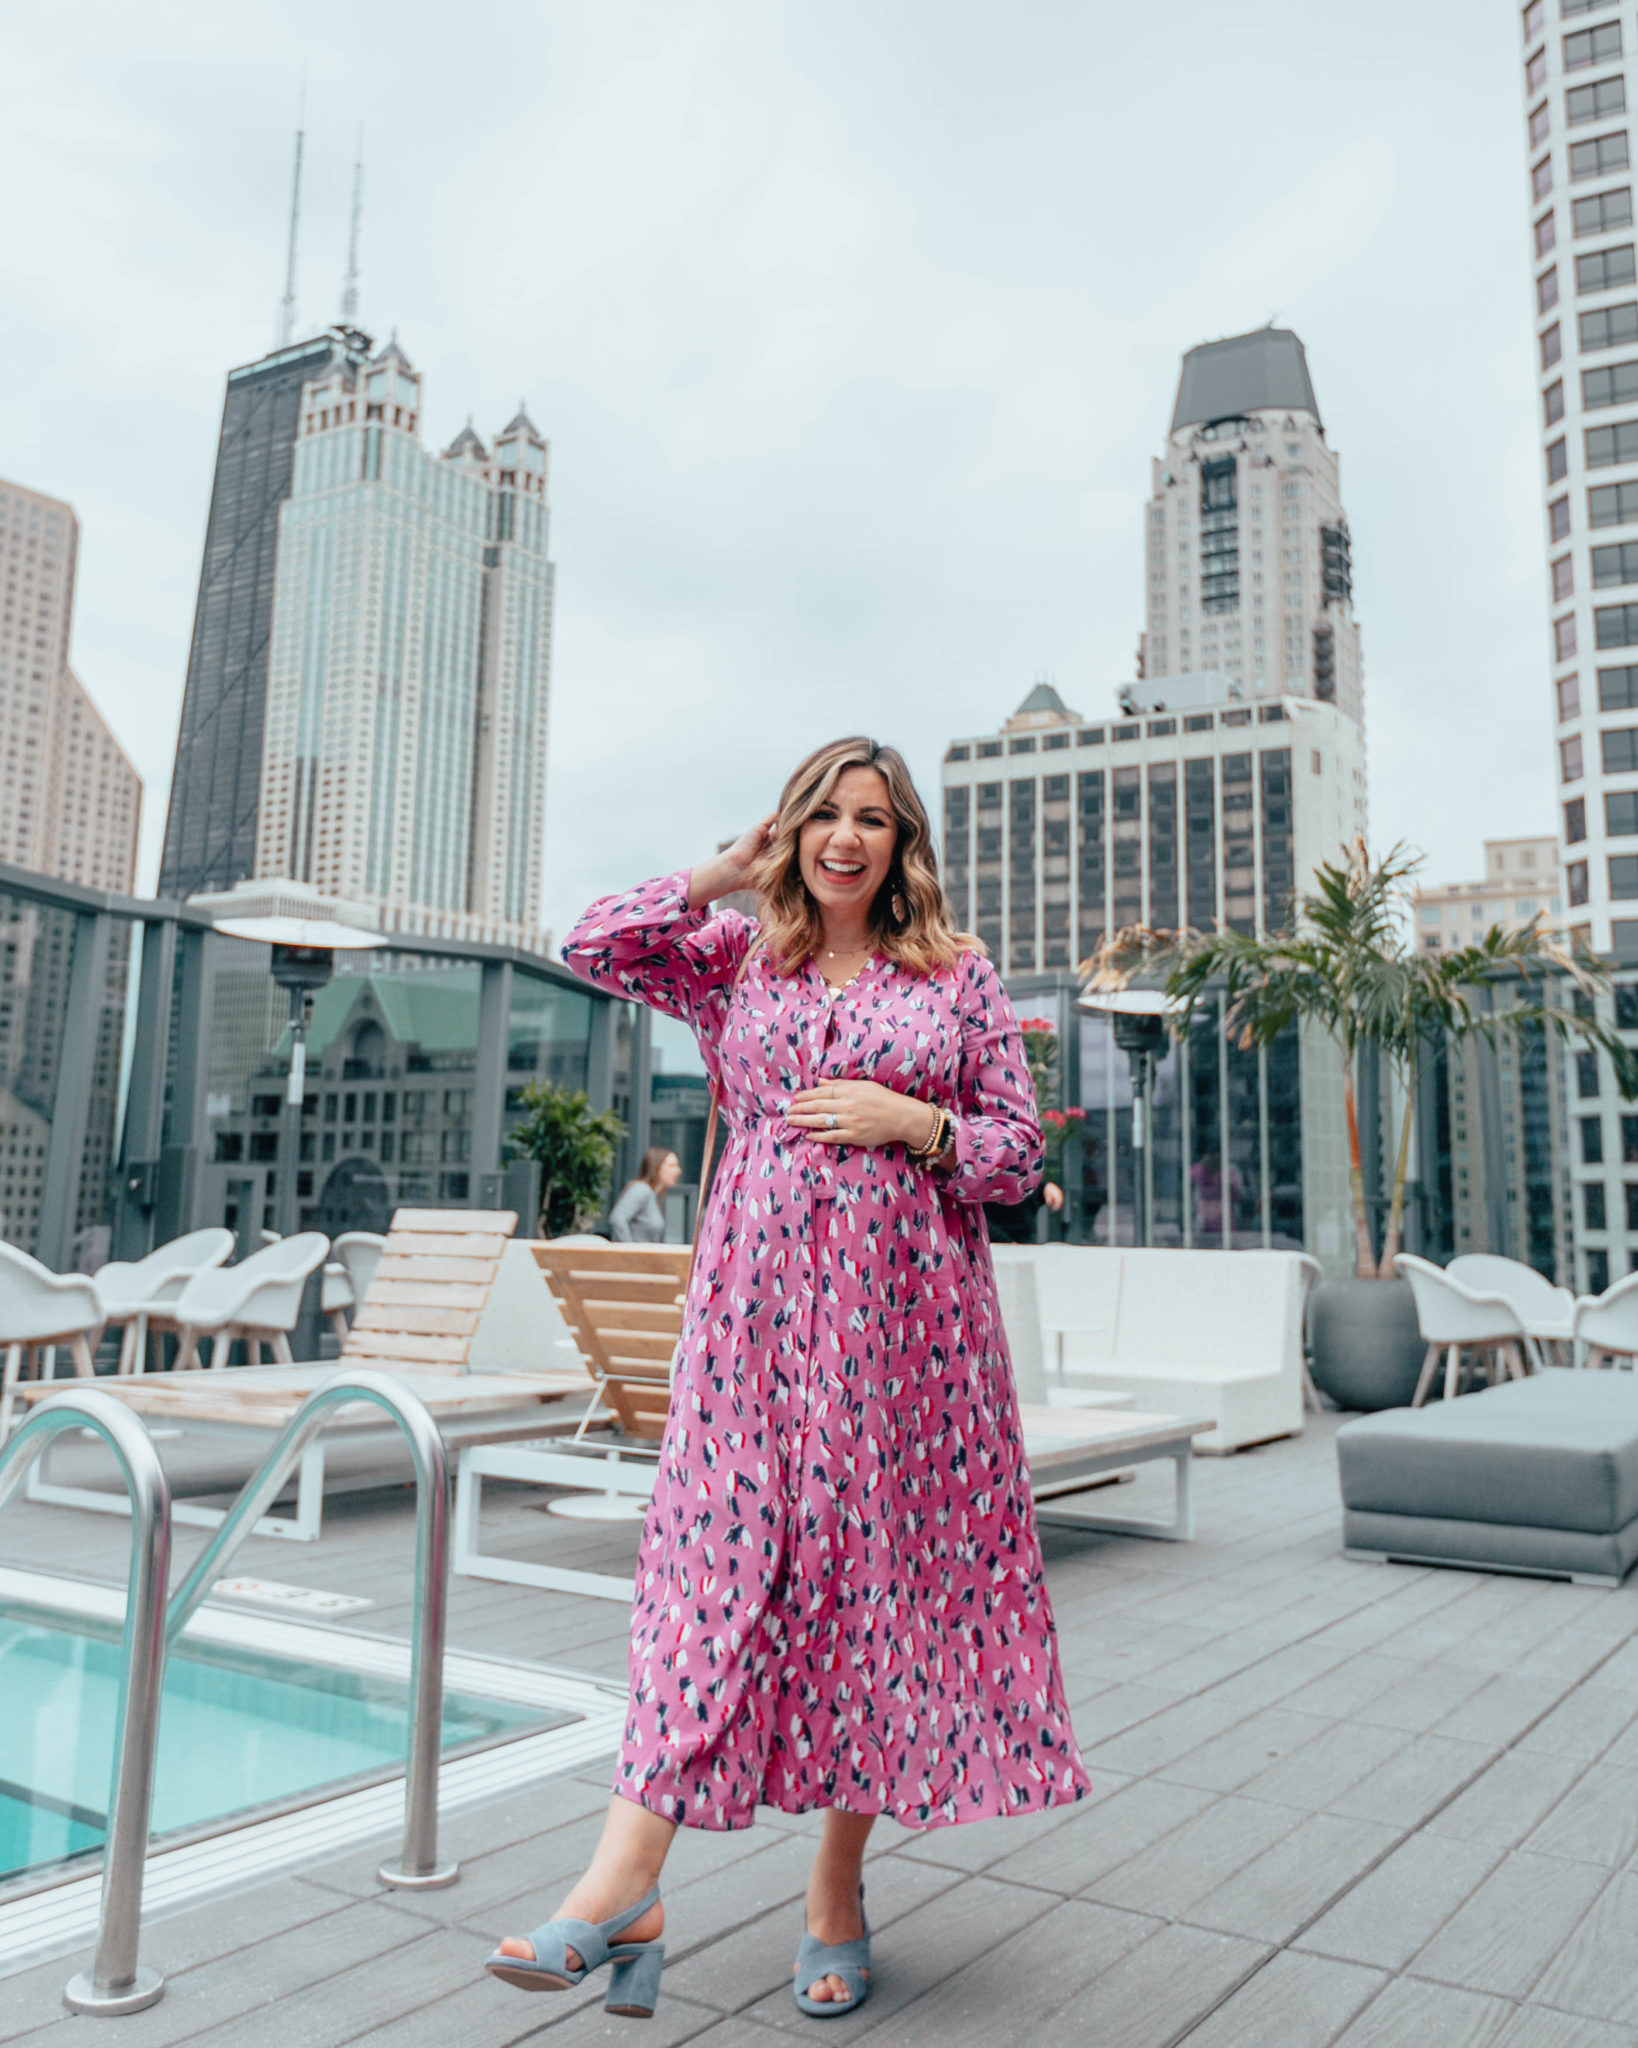 6 Weeks To Go, a pregnancy update featured by top US life and style pregnant blogger, Glass of Glam: image of a pregnant woman in Chicago wearing Nic + Zoe maxi dress, Naturalizer suede sandals, a Novum Rattan bag, Ettika palm leaf earrings.